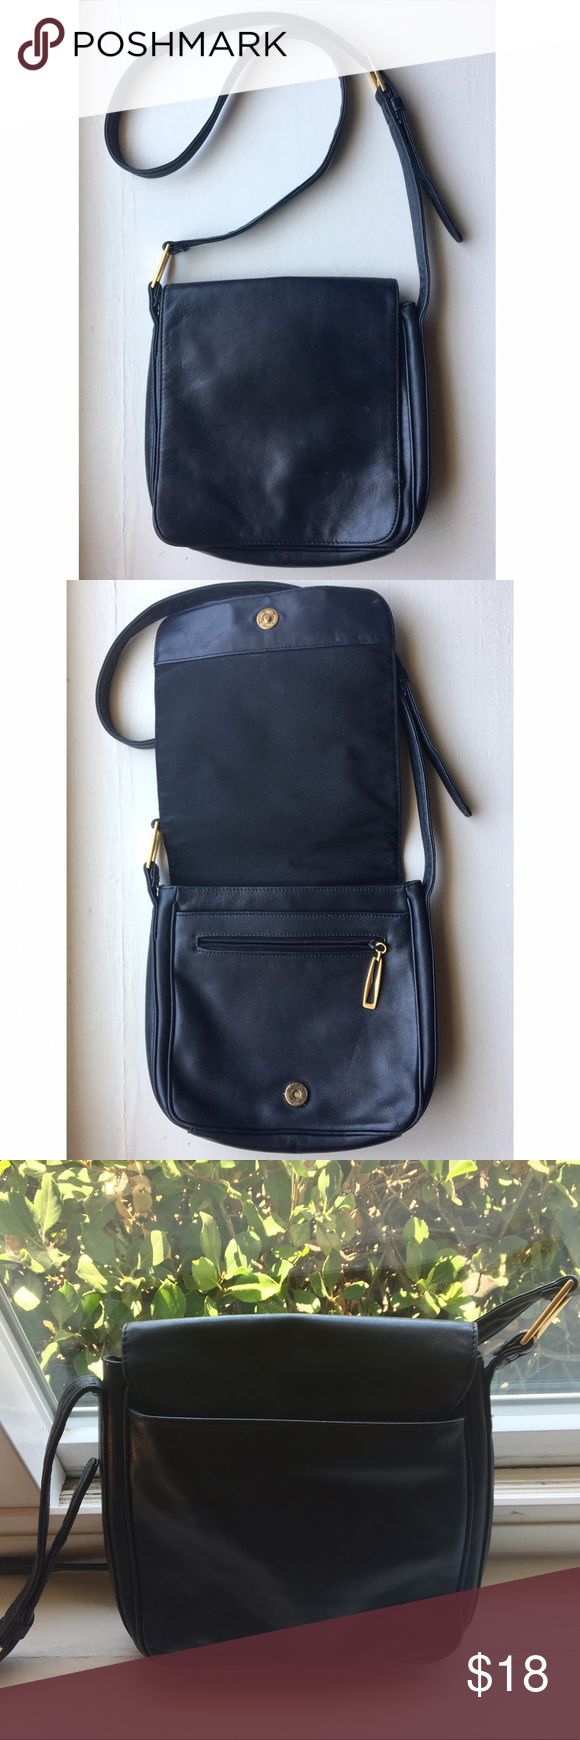 """Preview Collection leather crossbody Great used condition leather crossbody with so many pockets  I mainly use backpacks and smaller bags these days, this has a lot of life left!   Nordstrom brand Approx dimensions 10"""" x 9.5"""" Dark navy blue w/ gold accents Preview Collection Bags Crossbody Bags"""